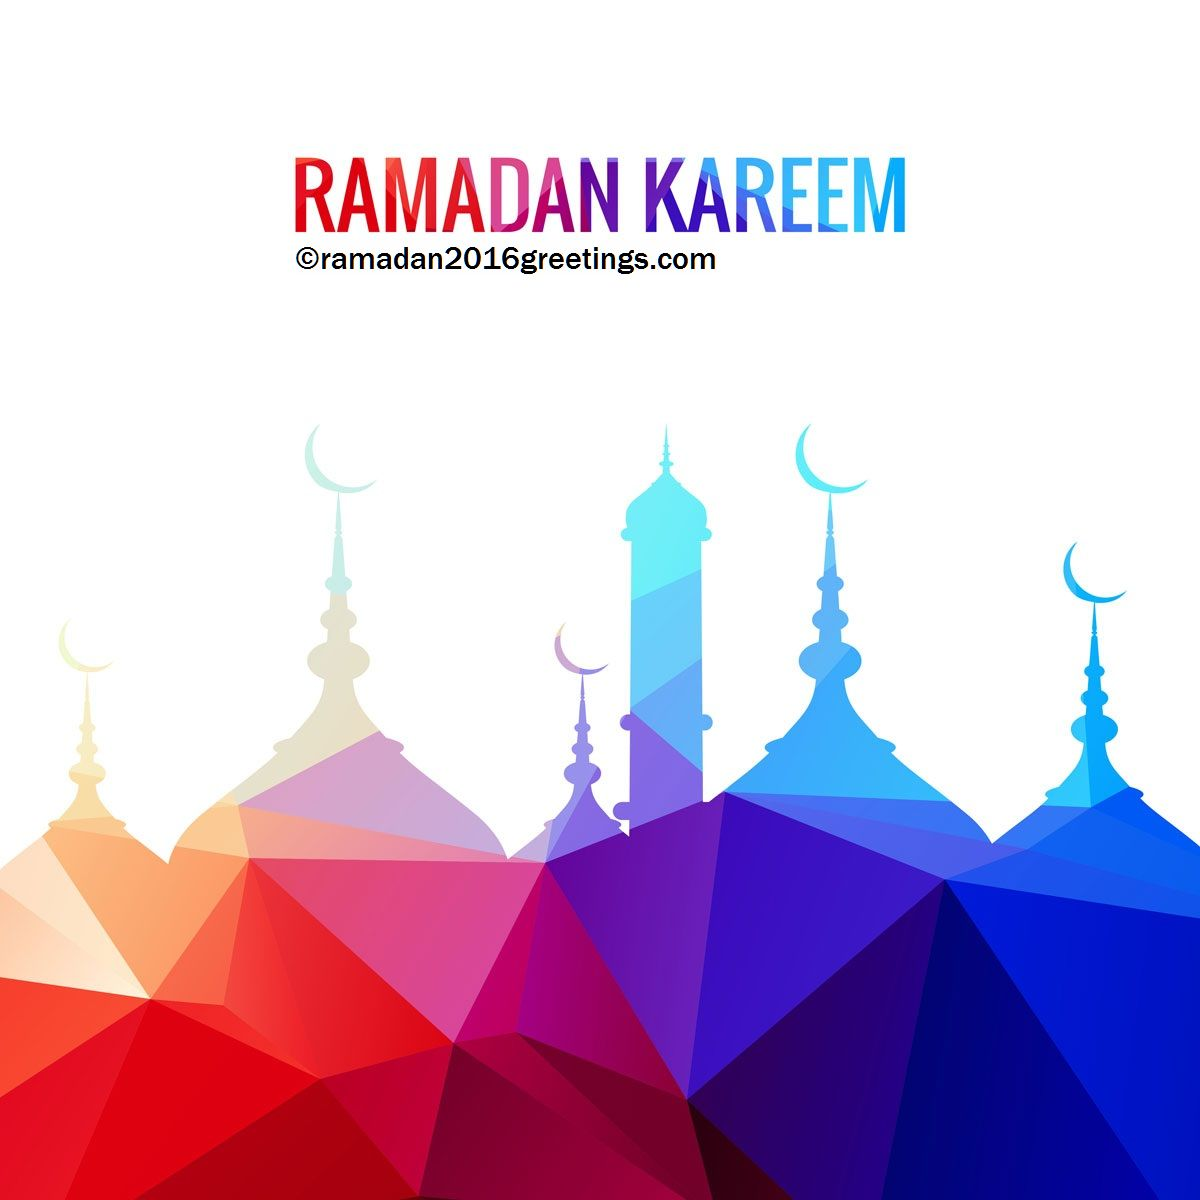 Greetings for end of ramadan image collections greeting card examples ramadan 2016 ramadan greetings eid al fitr 2016 quotes ramadan when the sun has set and kristyandbryce Gallery